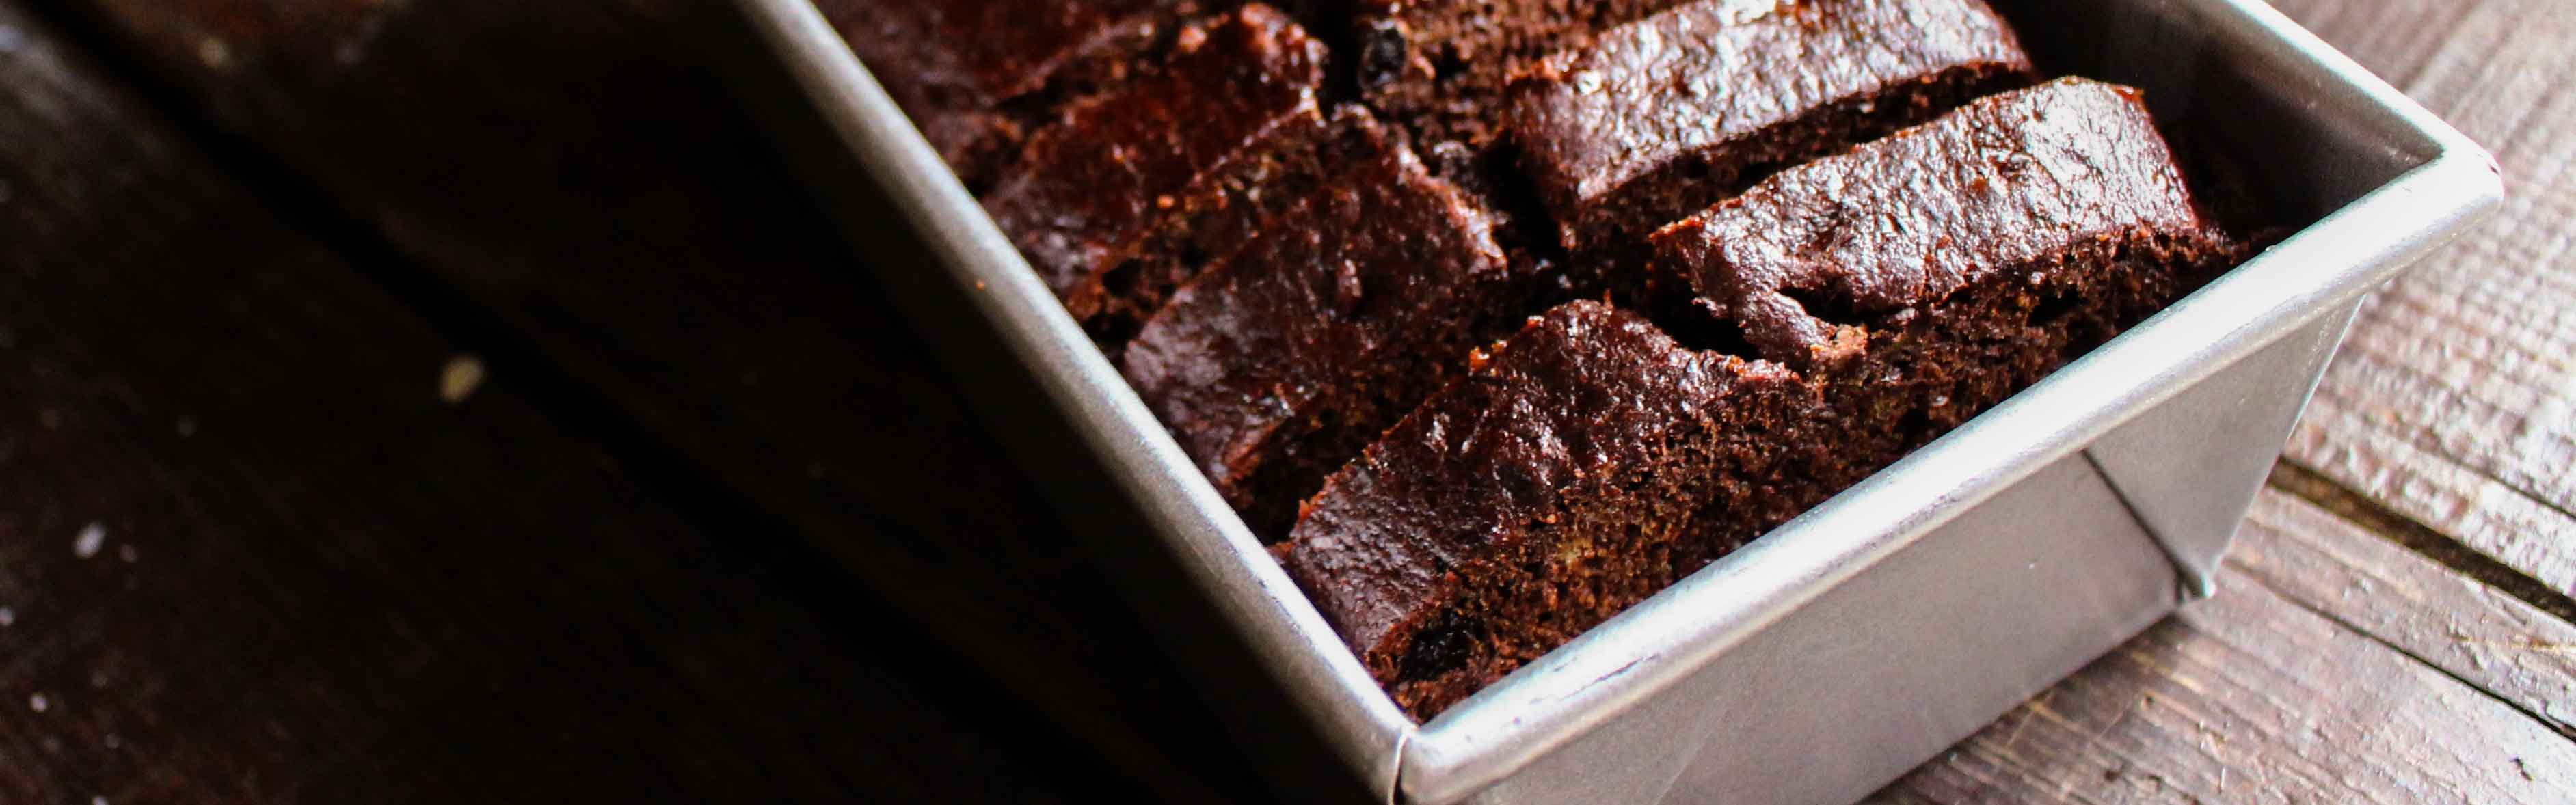 <p>Although it's vegan (no eggs and no dairy), this cake—a spin on a classic American wacky cake—delivers a deep mocha flavor that's deepened with the addition of Dried Plum Puree. For best results, use a high-quality Dutch-processed cocoa powder. For an alternative cake, melted coconut oil can replace vegetable oil. Use 75 grams coconut oil […]</p>